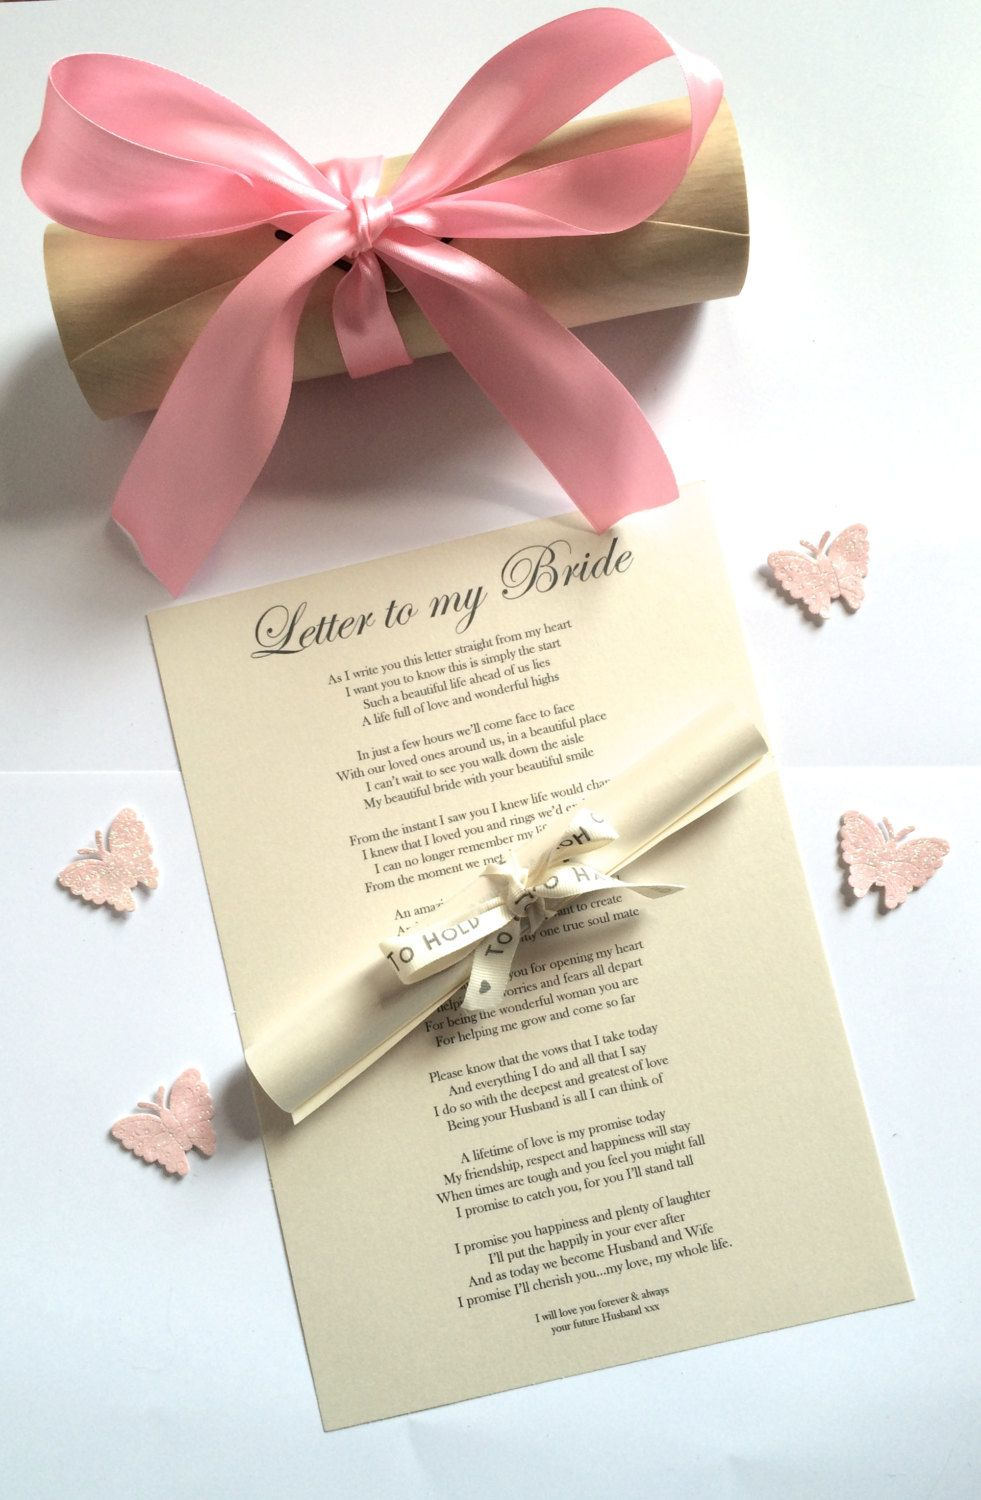 Wedding Gift For Bride From Groom On Wedding Day